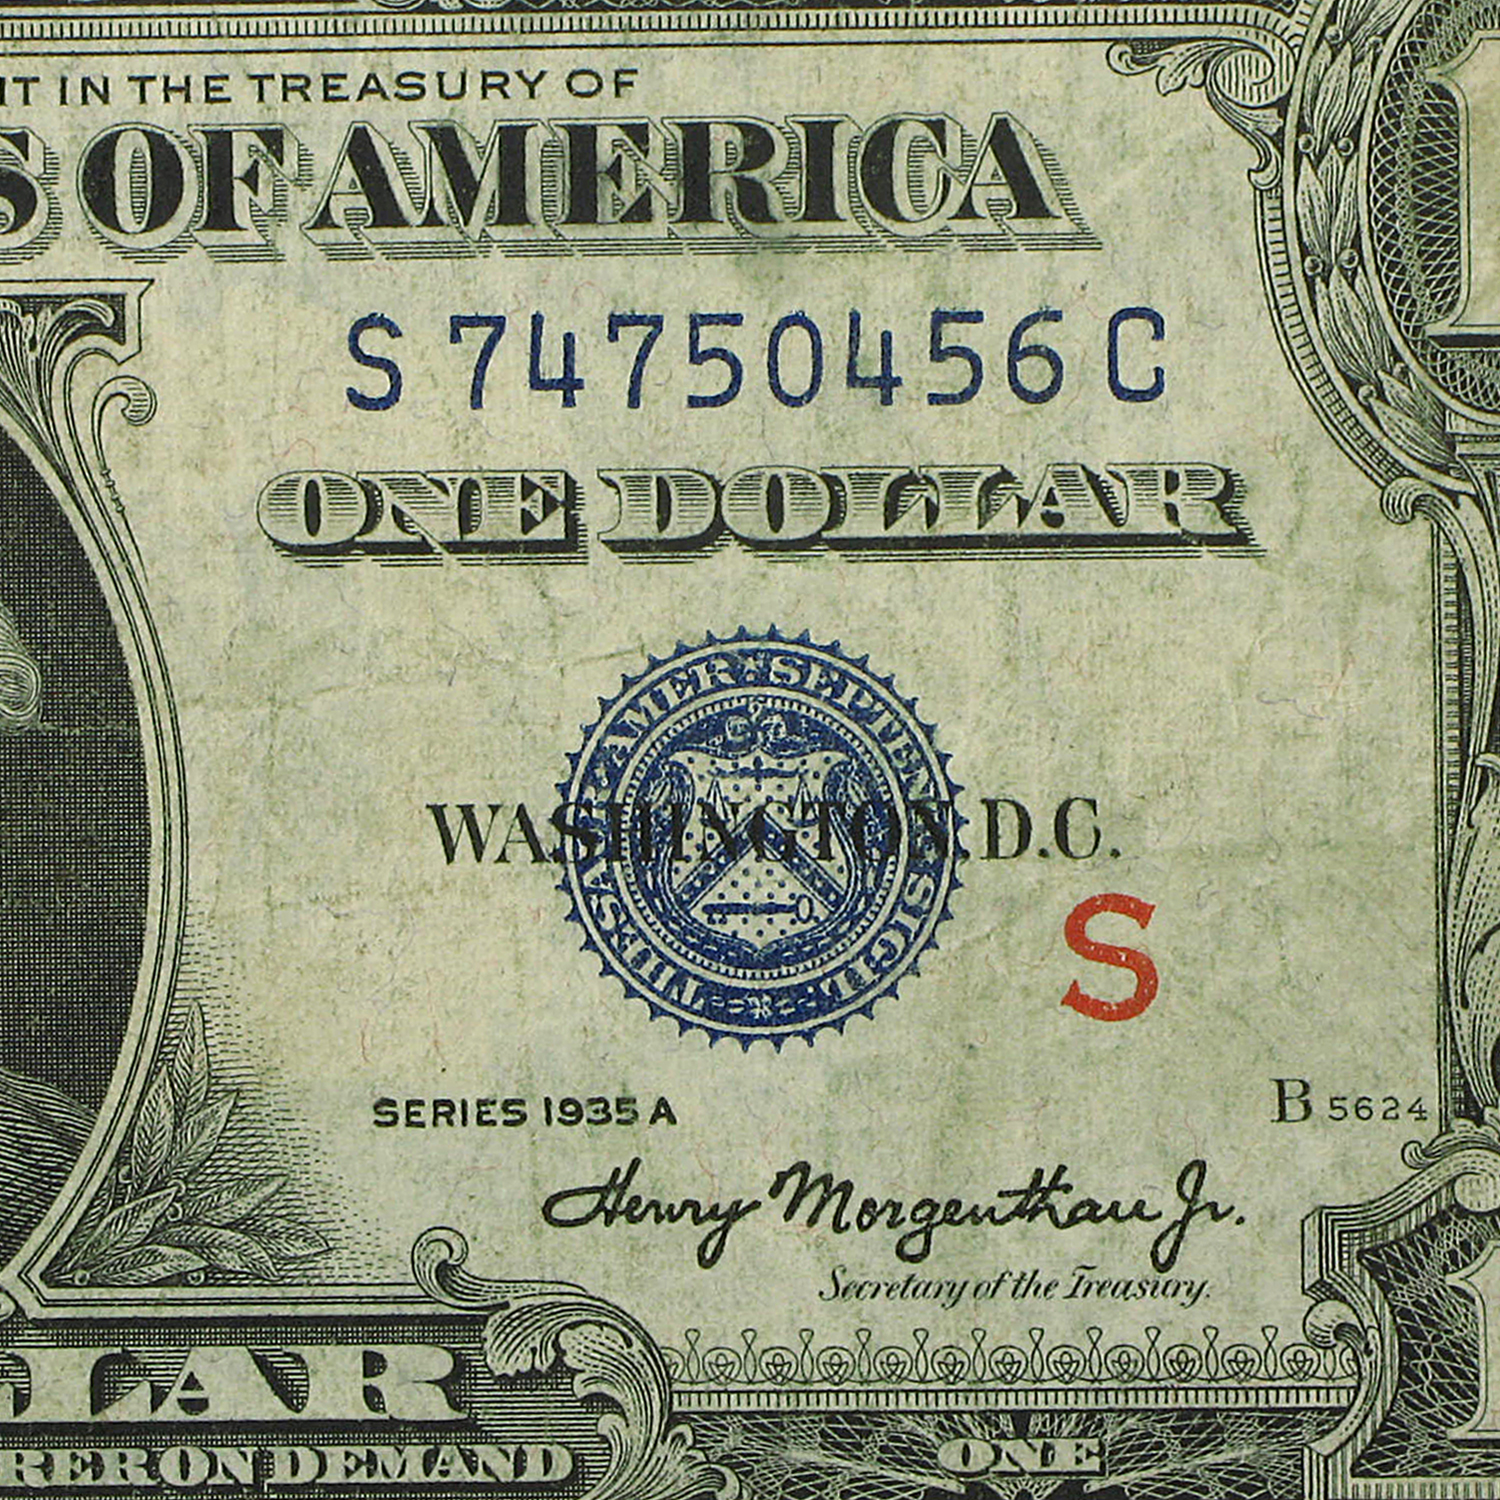 1935-A $1.00 (Very Good) - Fine - S (Experimental Note)